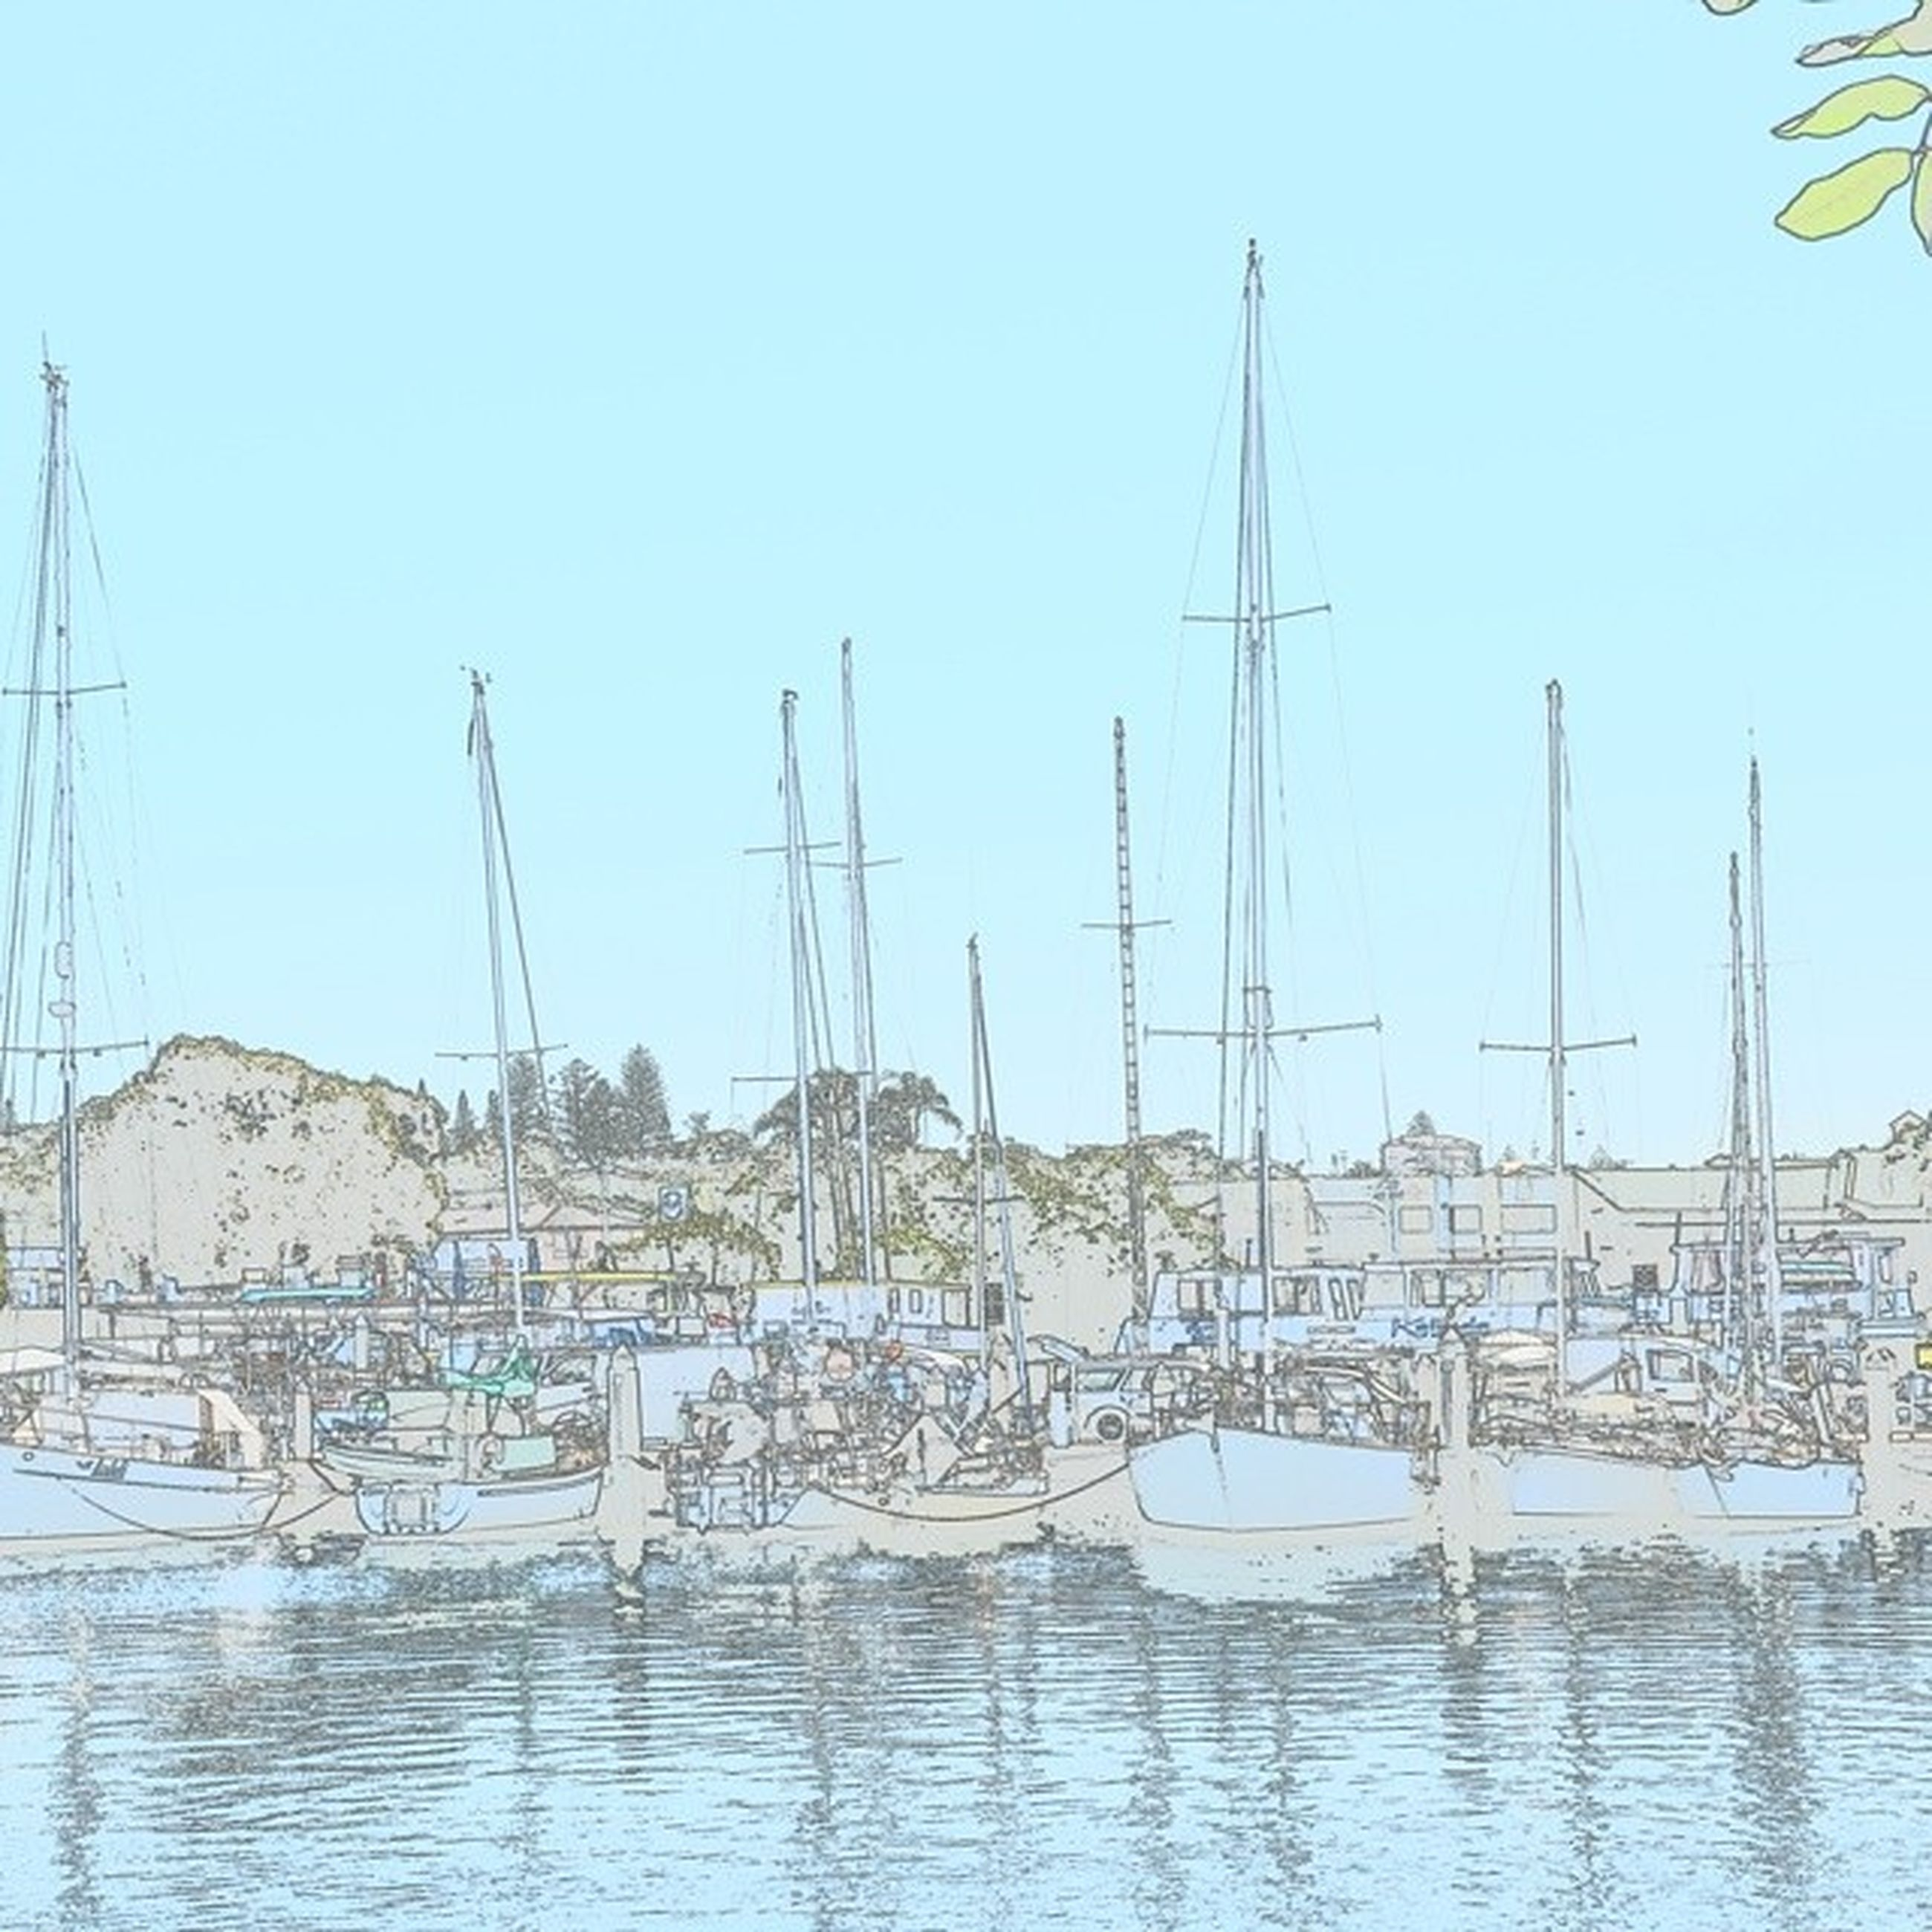 water, clear sky, nautical vessel, moored, transportation, built structure, mode of transport, boat, harbor, building exterior, waterfront, architecture, copy space, lake, mast, day, river, sailboat, nature, outdoors